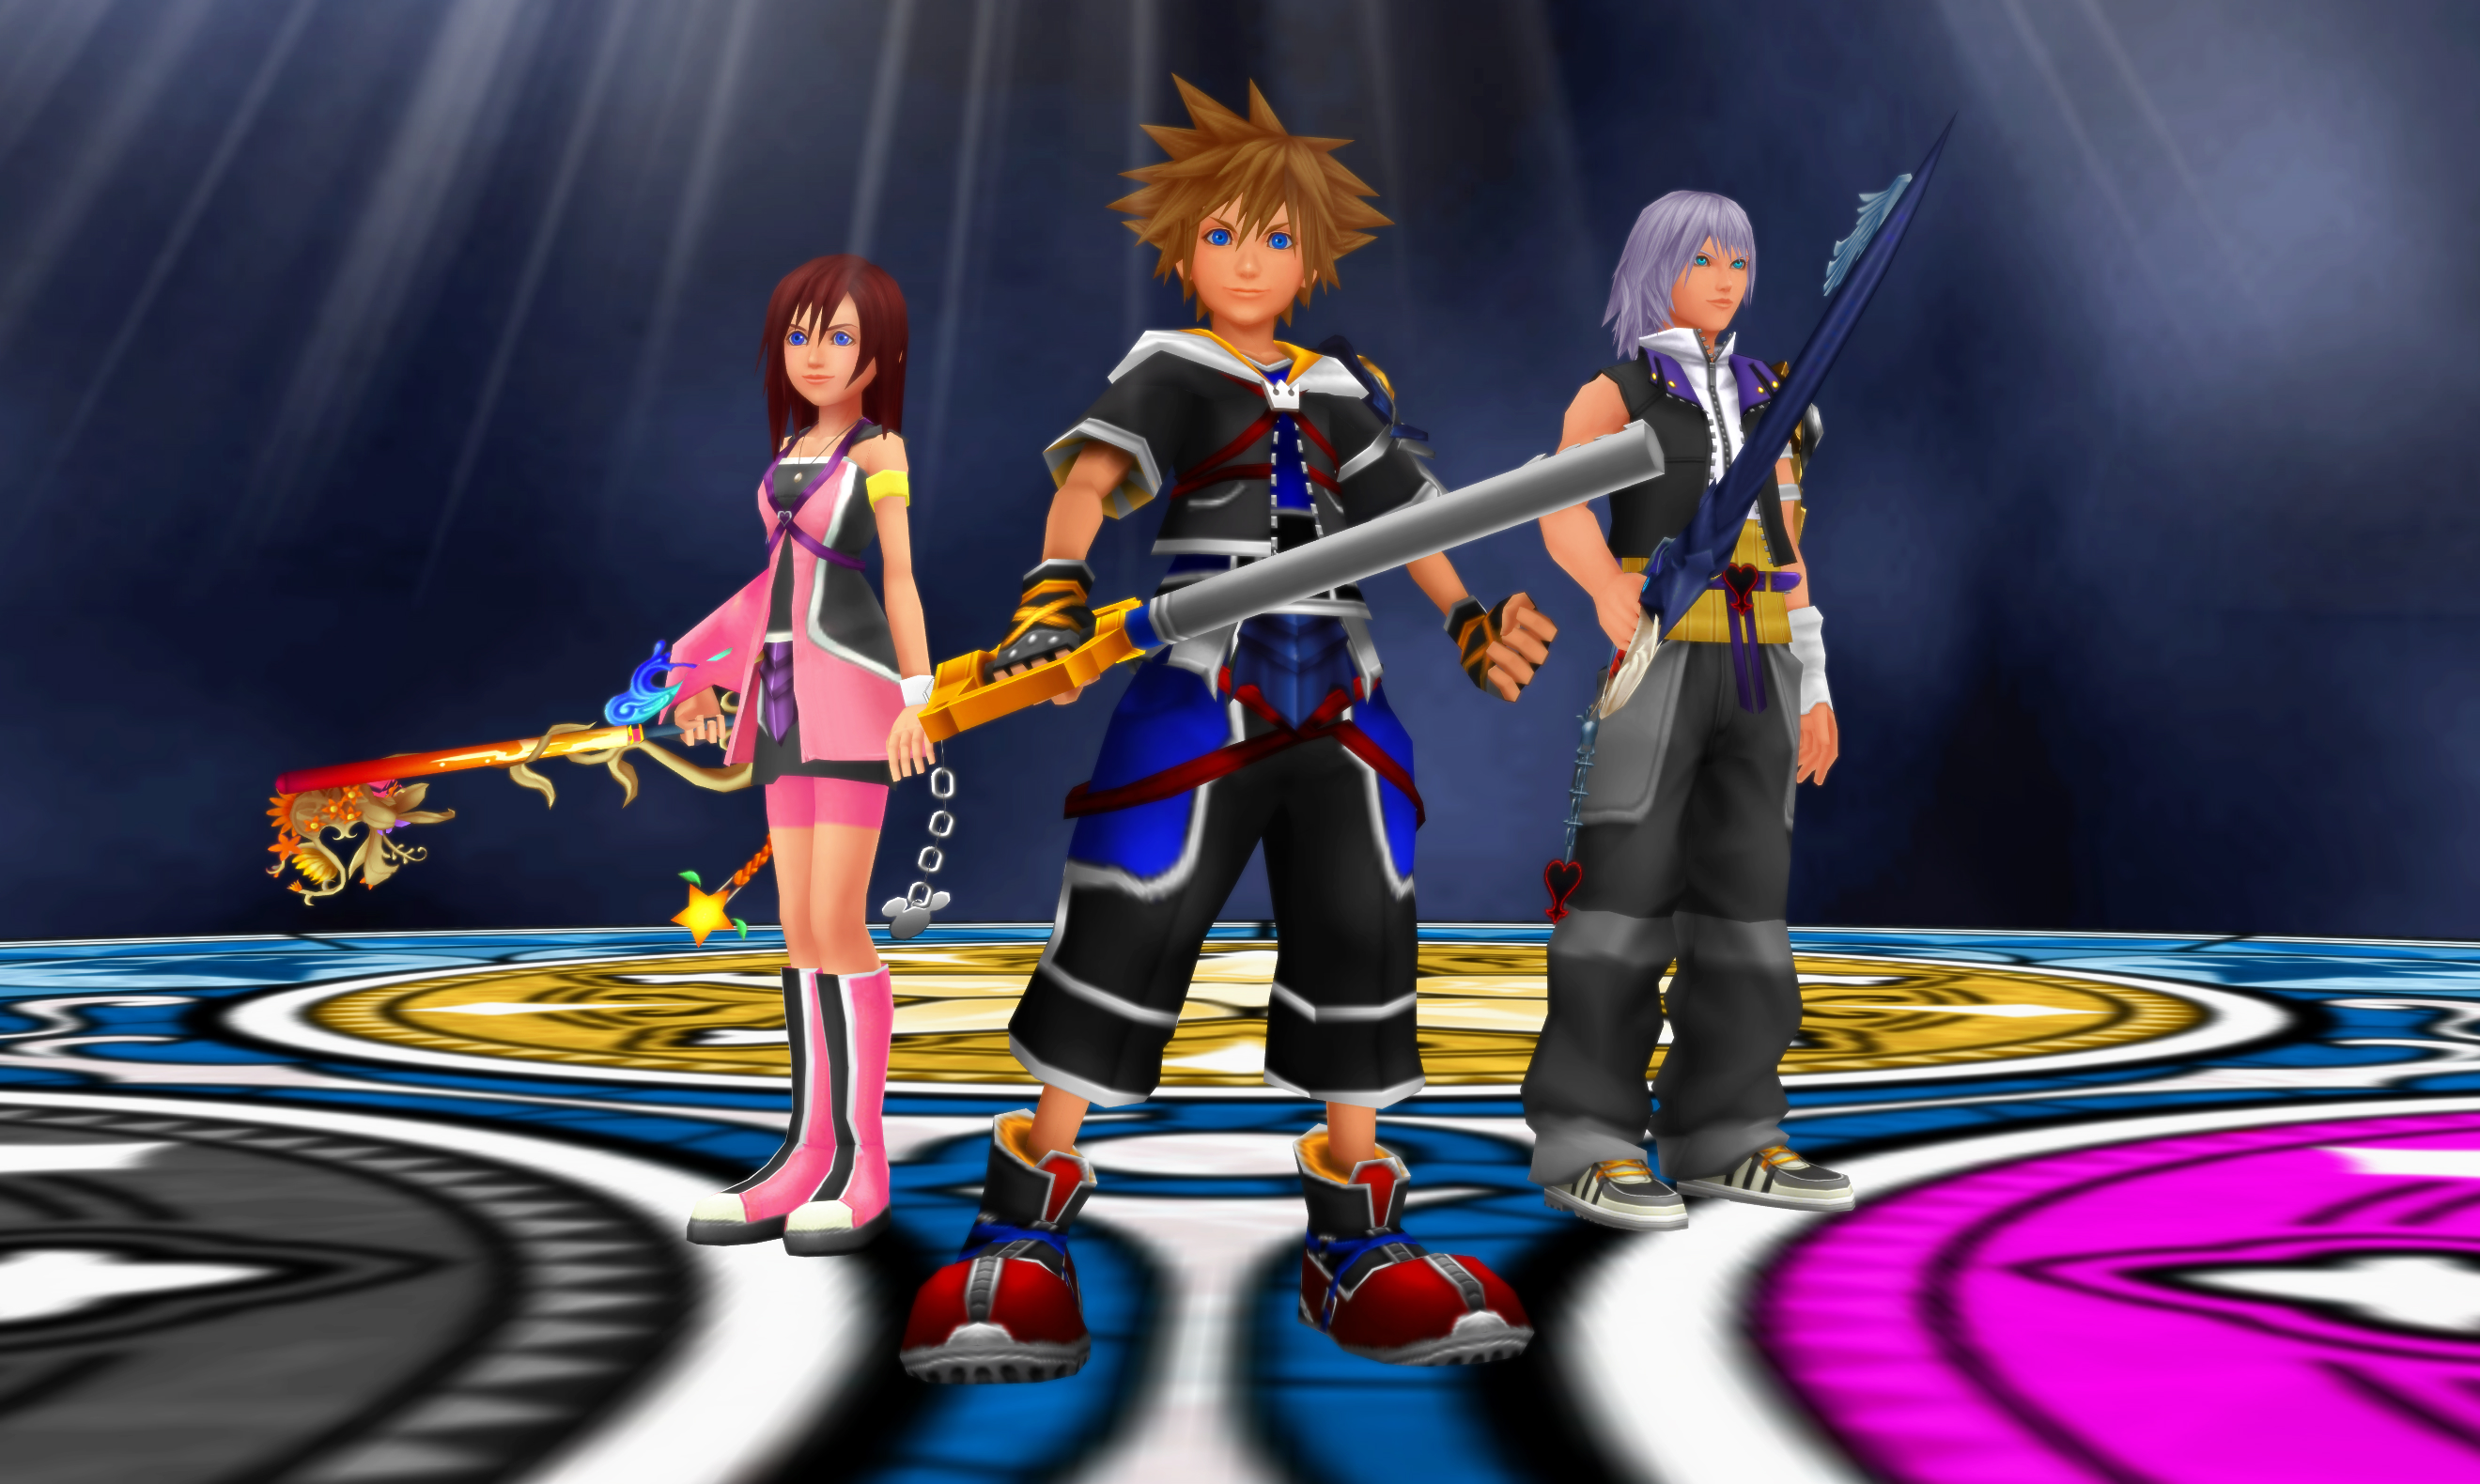 Kh deep dive destiny the destined three by todsen19 on - Kingdom hearts deep dive ...